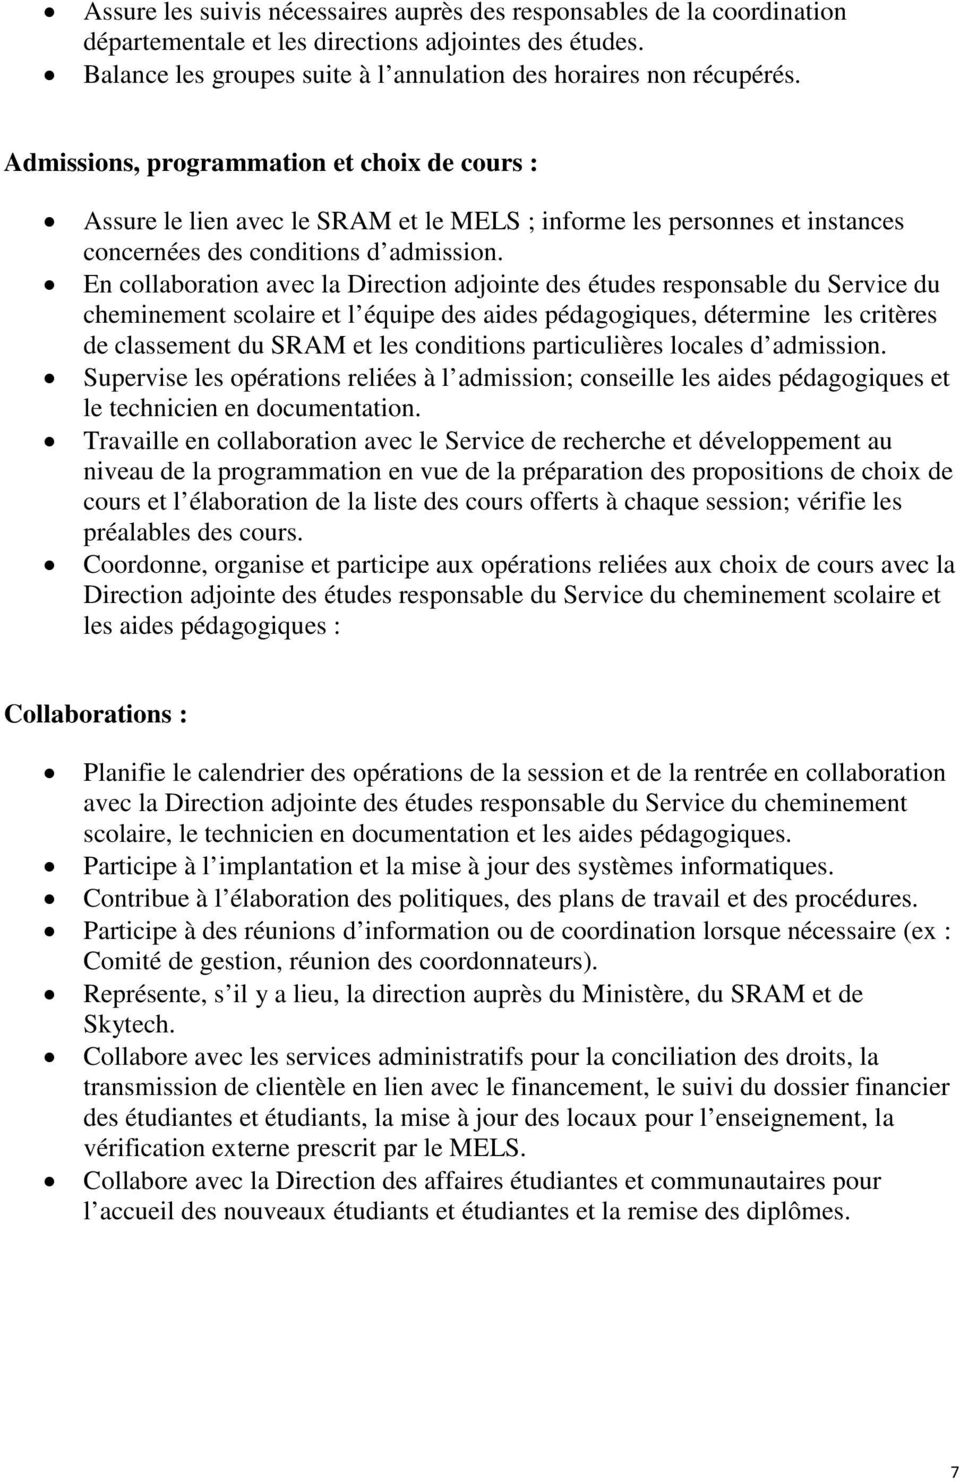 En collaboration avec la Direction adjointe des études responsable du Service du cheminement scolaire et l équipe des aides pédagogiques, détermine les critères de classement du SRAM et les